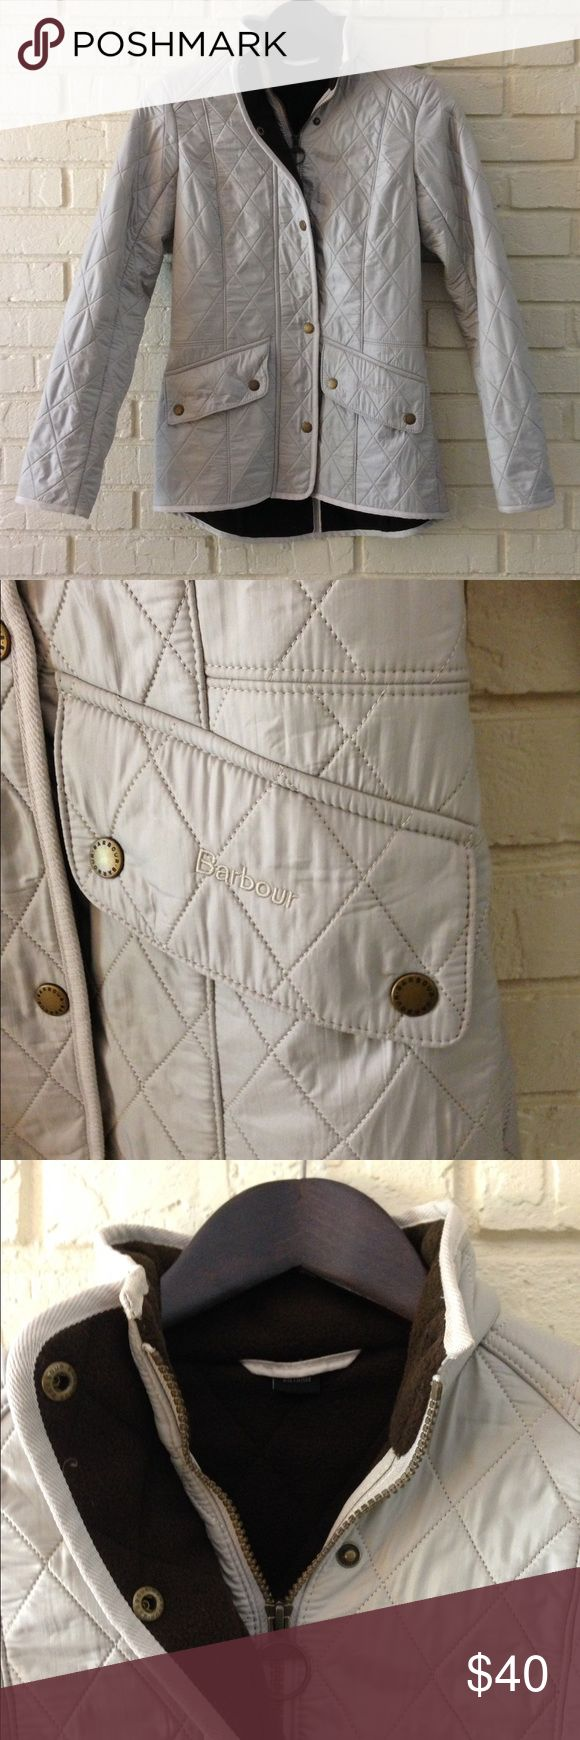 EUC Barbour quilted jacket EUC Barbour jacket. Very warm and cozy. Barbour Jackets & Coats